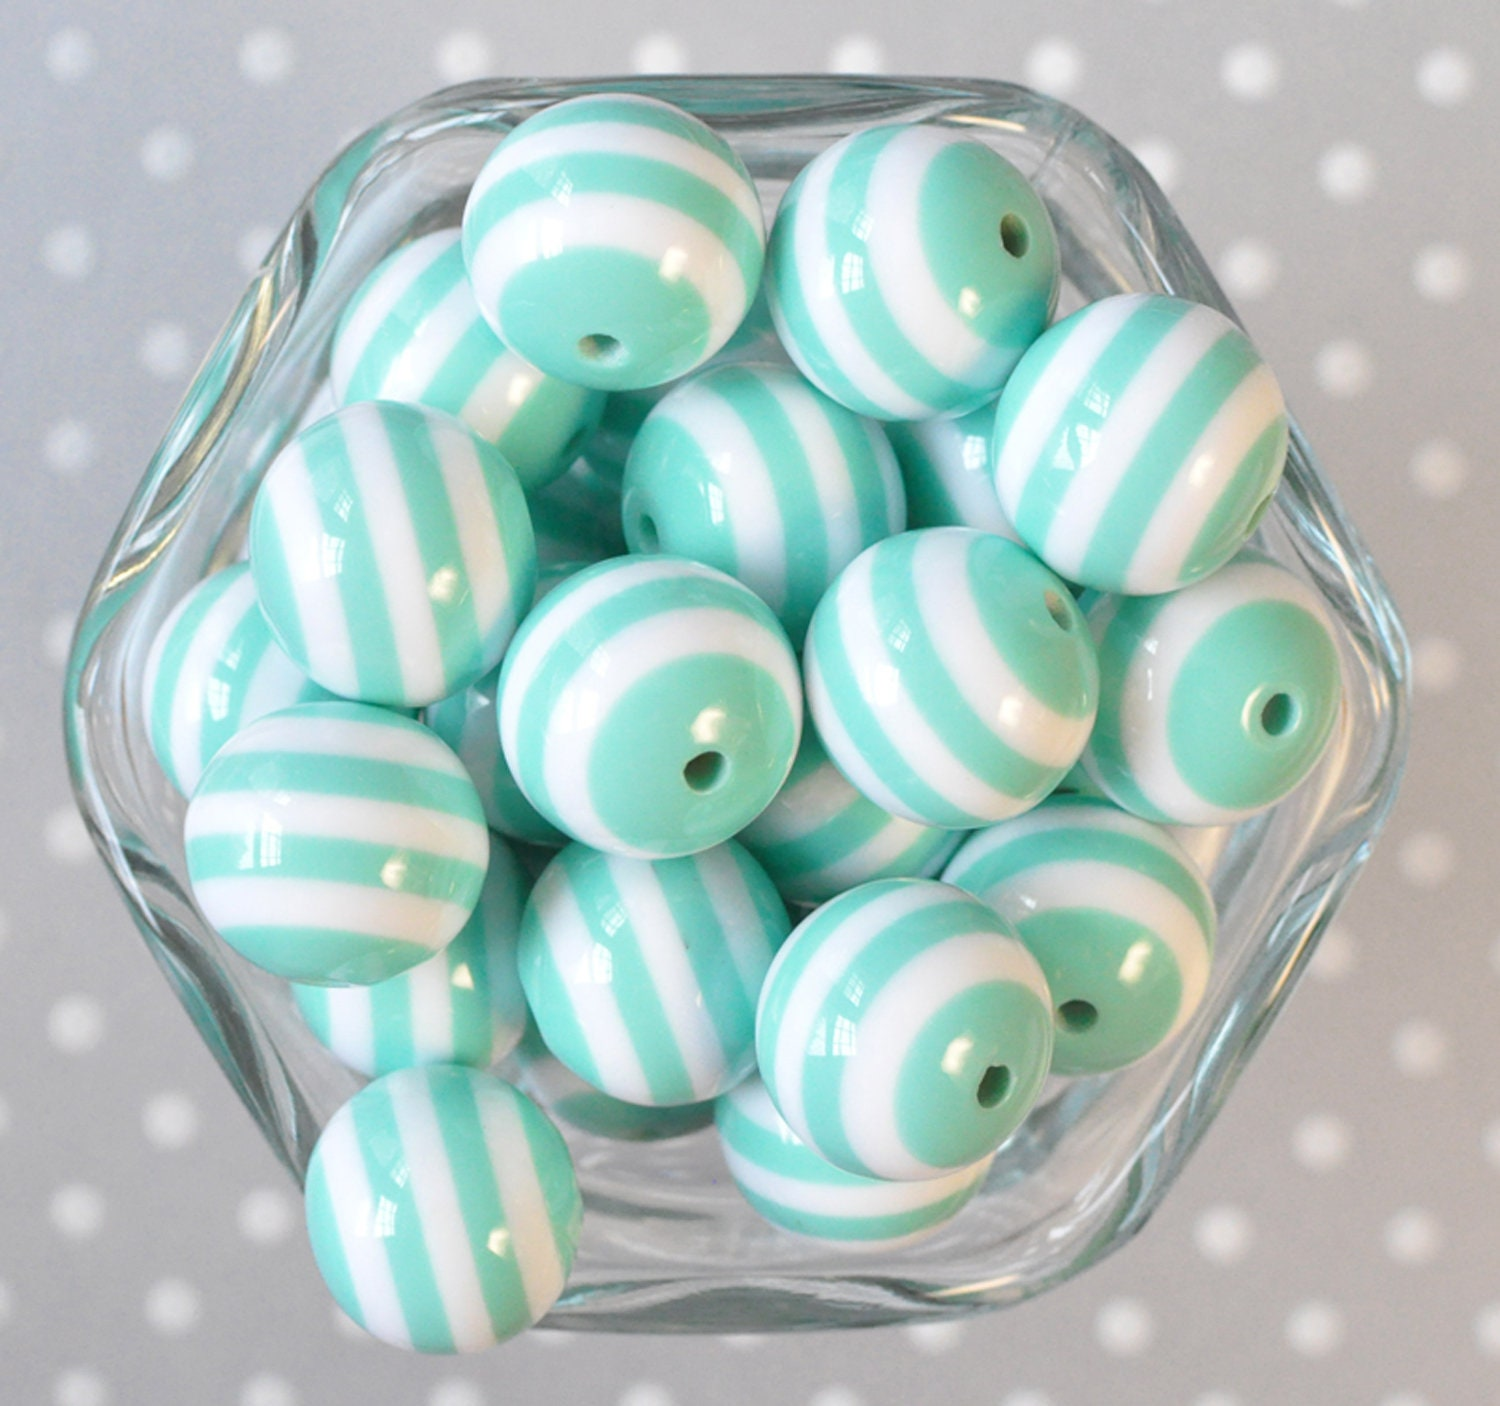 8mm 50 x BRIGHT STRIPE RESIN BUBBLE GUM BEADS SAME DAY POSTAGE